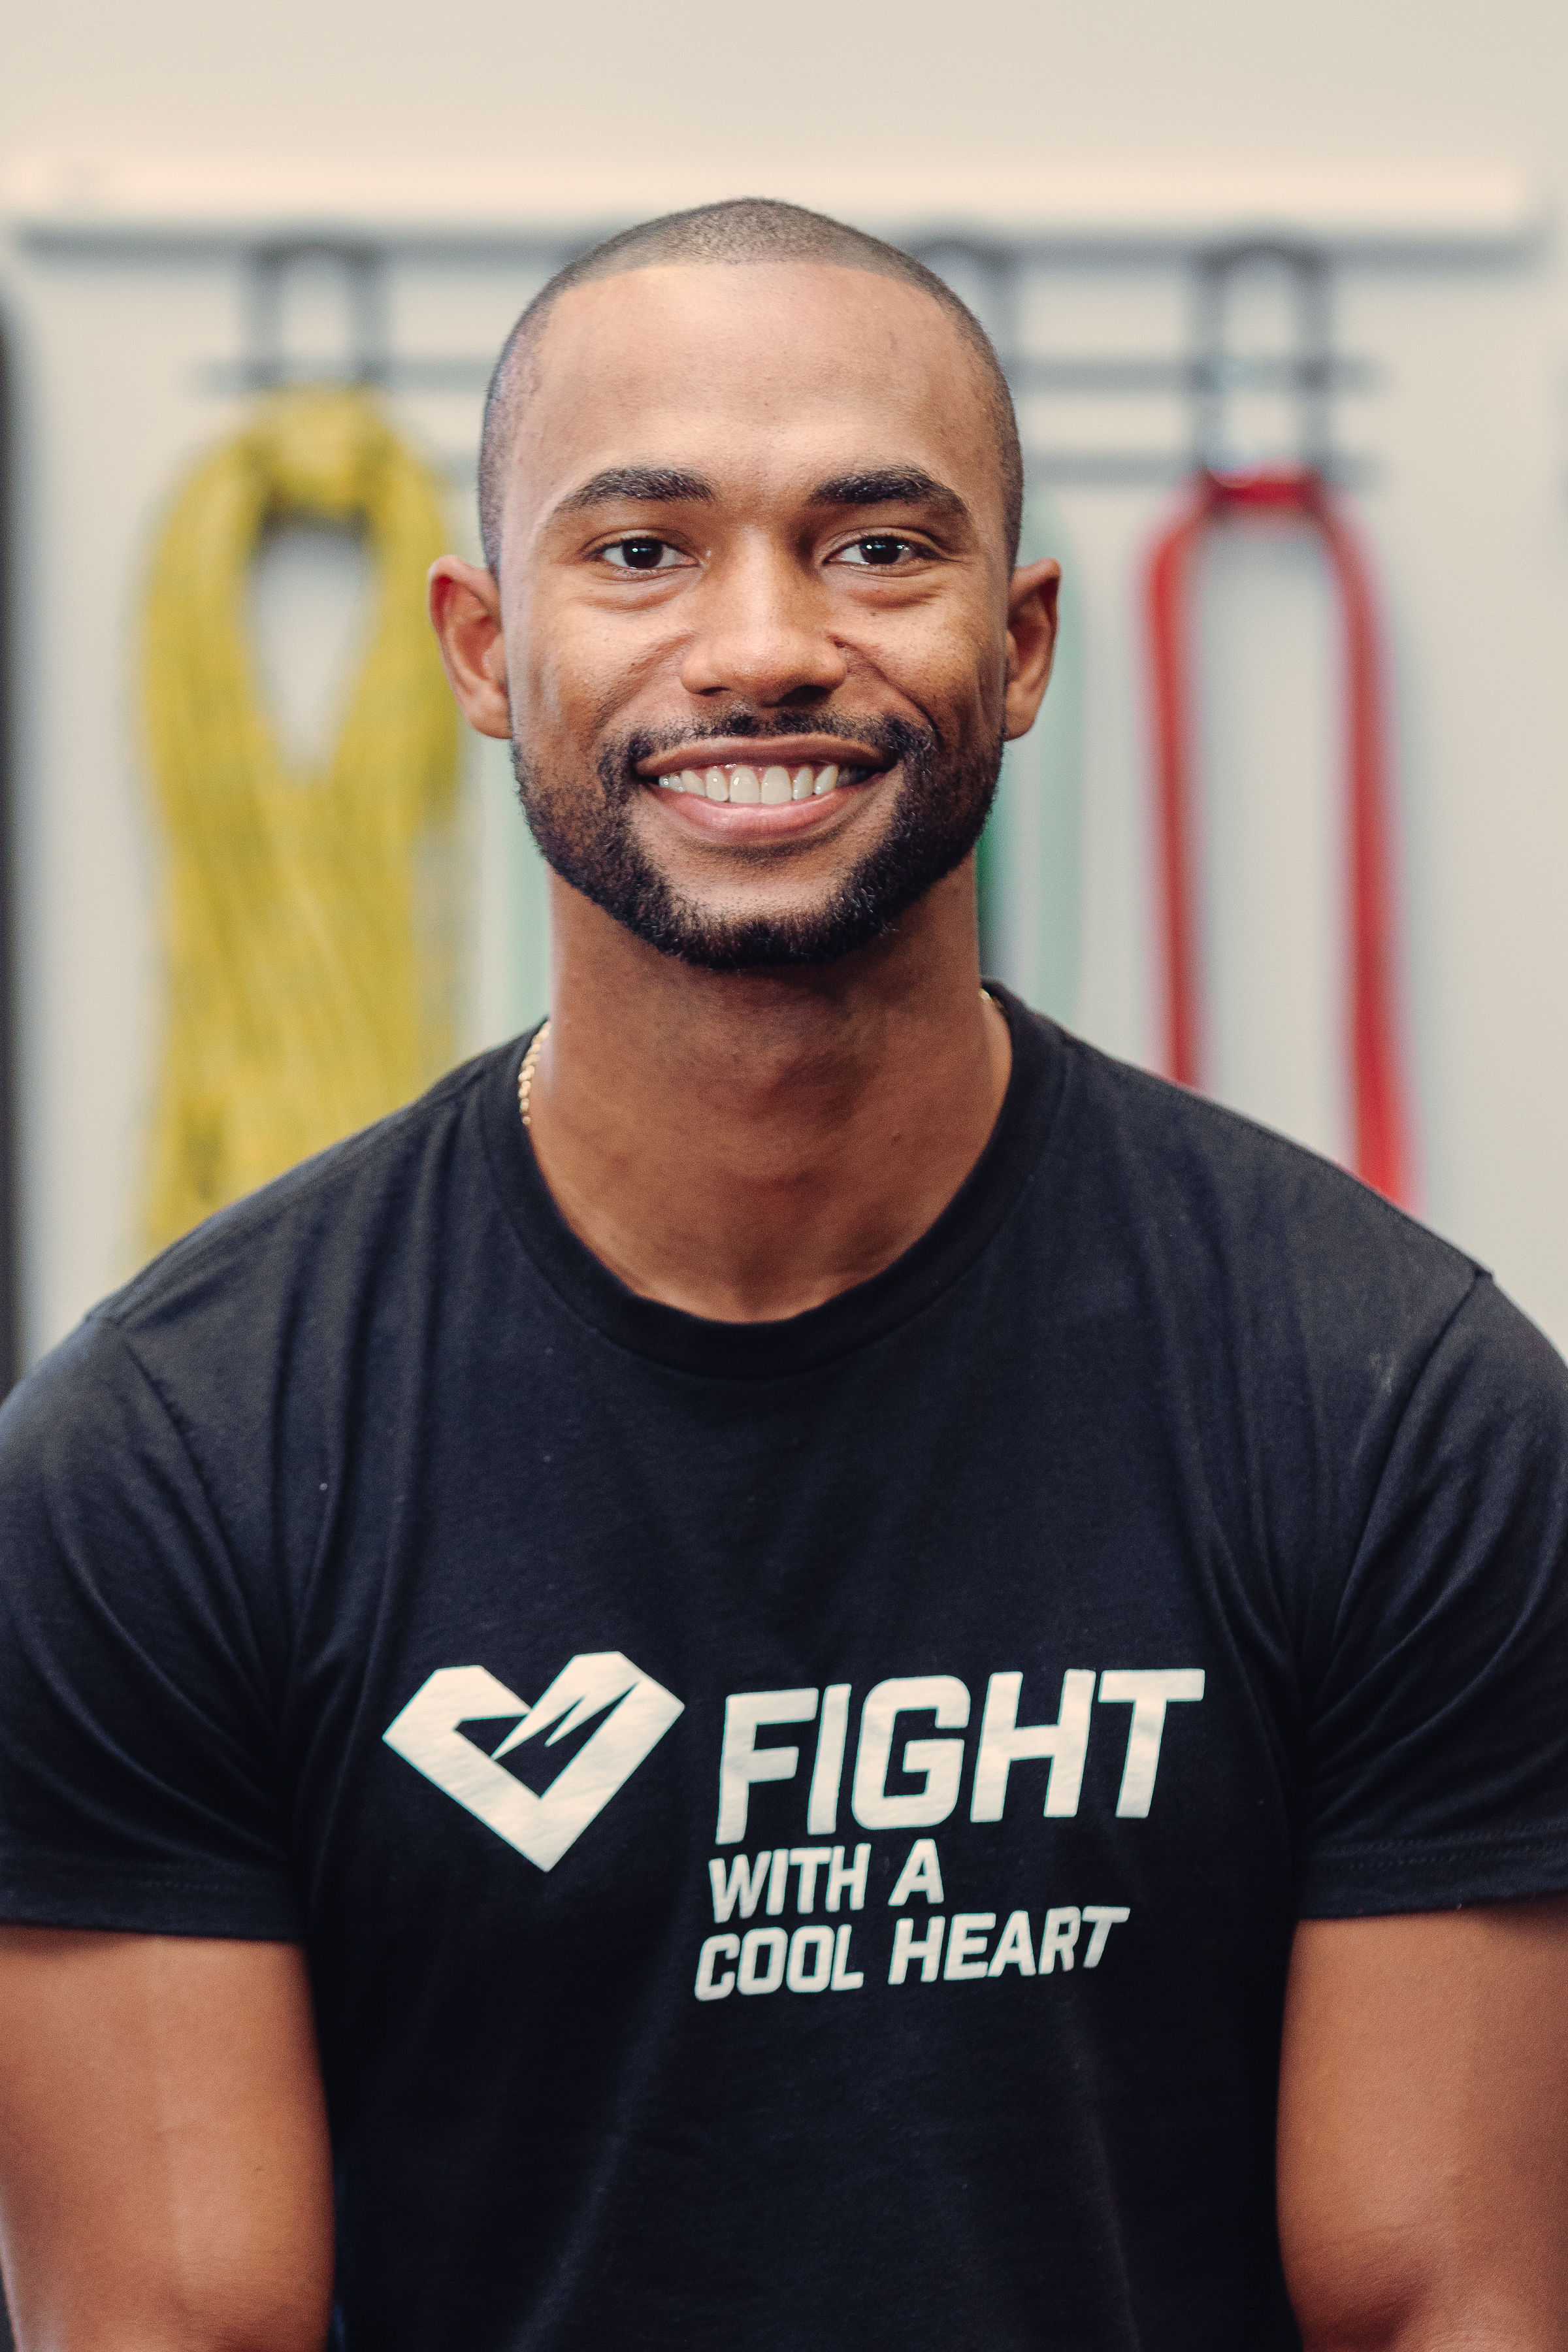 Omar Kennedy, ATC - + Certified Athletic Trainer+ Emergency Medicine Specialist+ Sports Performance ConsultantOmar Kennedy brings over 10 years of experience working in the fitness industry with an additional 8 years as a Certified Athletic Trainer (ATC). He is a founding member of Cool Heart Performance, coupling his Sports Medicine knowledge with his understanding of Biomechanics and Return-to-Sport training for athletes of a wide variety of sports. He also serves as lead Athletic Trainer on the Medical Team for the United States Muay Thai Federation.Omar graduated in 2010 from Barry University in Miami Shores, Florida, with his BA in Athletic Training. His senior internship was with Matthew Cooper and Julio Pardave at USA THERAPY in Aventura FL, a Chiropractic office that partnered with Bommarito Performance to train and rehab combine players entering the draft for the 2010 season that included notable draft picks such as Rob Gronkowski and Antonio Brown. Omar has also worked with UCLA for five years covering a wide variety of club sports. During this time, Omar primarily oversaw the Men's Rugby team and helped them reach three play-off finishes in the collegiate rugby championship.Omar is worked with Glendale Adventist Therapy & Wellness center where he served as an Athletic Trainer working alongside Physical Therapists. He has worked for Hoover High School since 2012 as the head athletic trainer where he covers all high school sports and is the major advocate for athlete safety and performance.